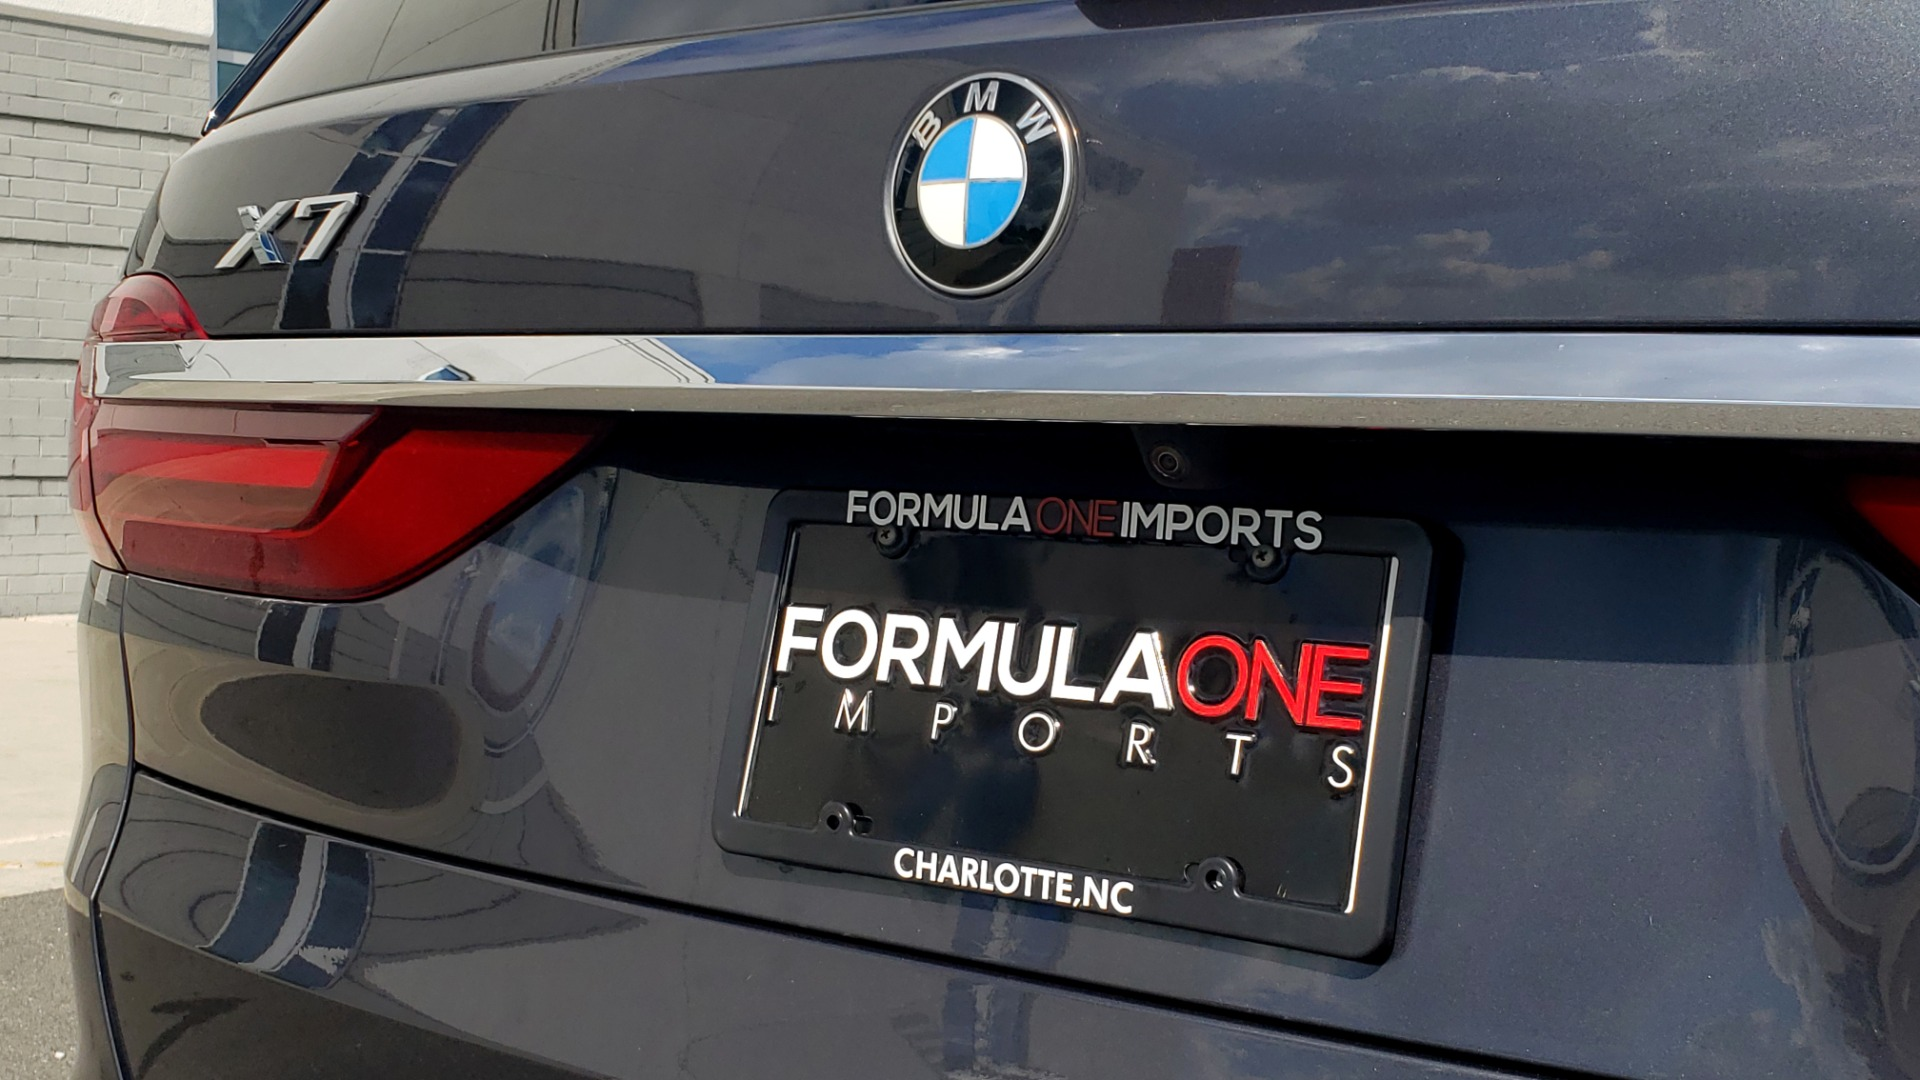 Used 2019 BMW X7 XDRIVE40I PREMIUM / LUXURY / COLD WEATHER / PARK ASST / PANORAMIC SKY / TOW for sale $75,999 at Formula Imports in Charlotte NC 28227 38